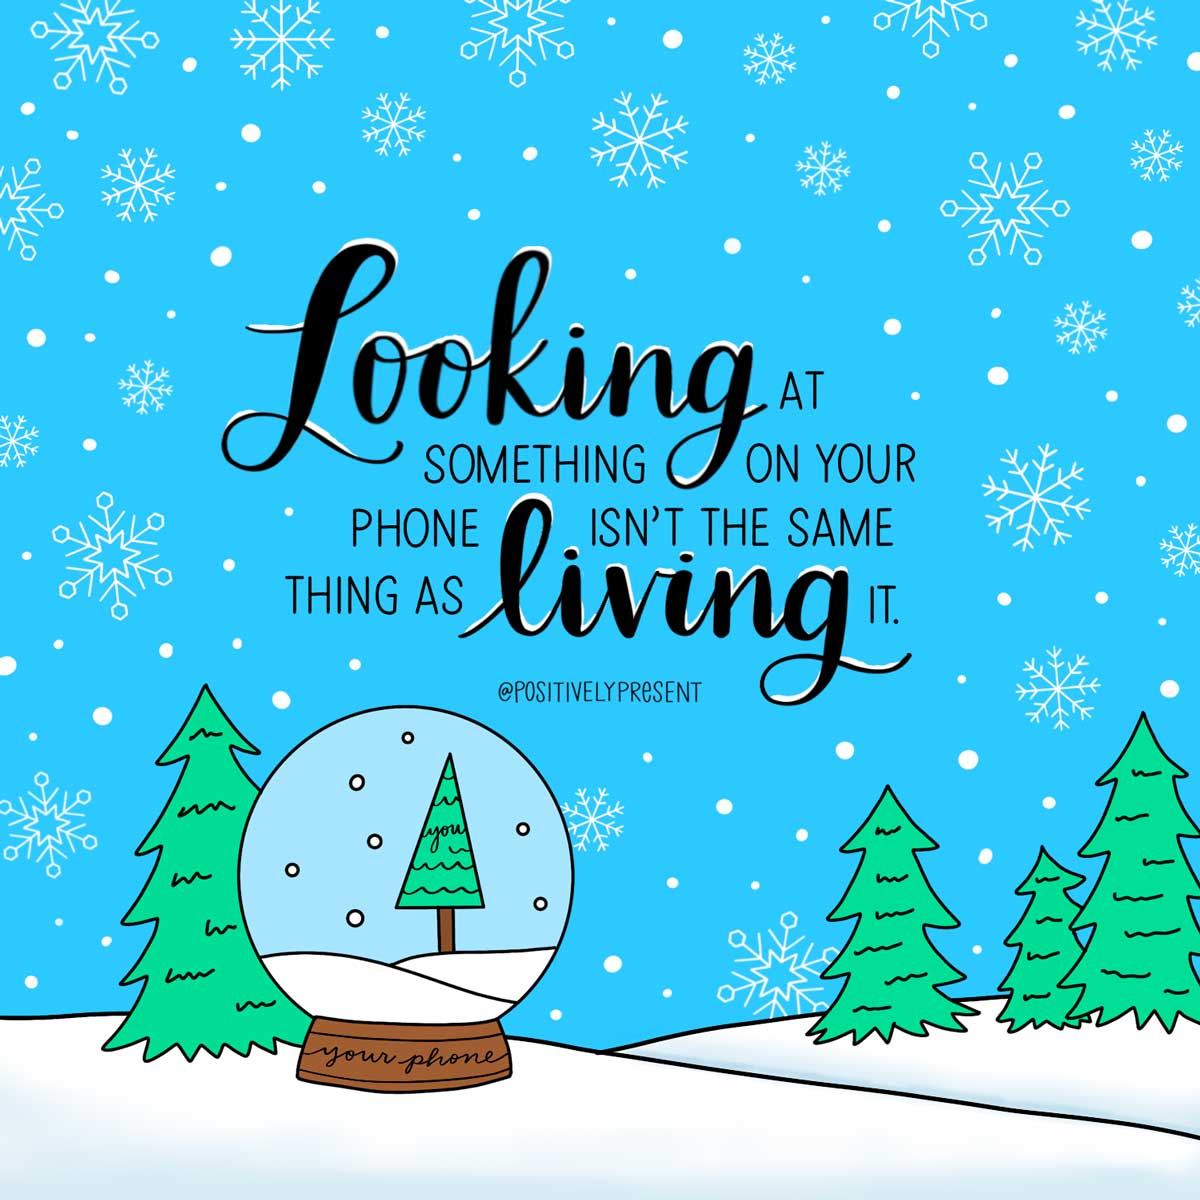 looking at something on social media is not the same as living it quote on snowy illustration.